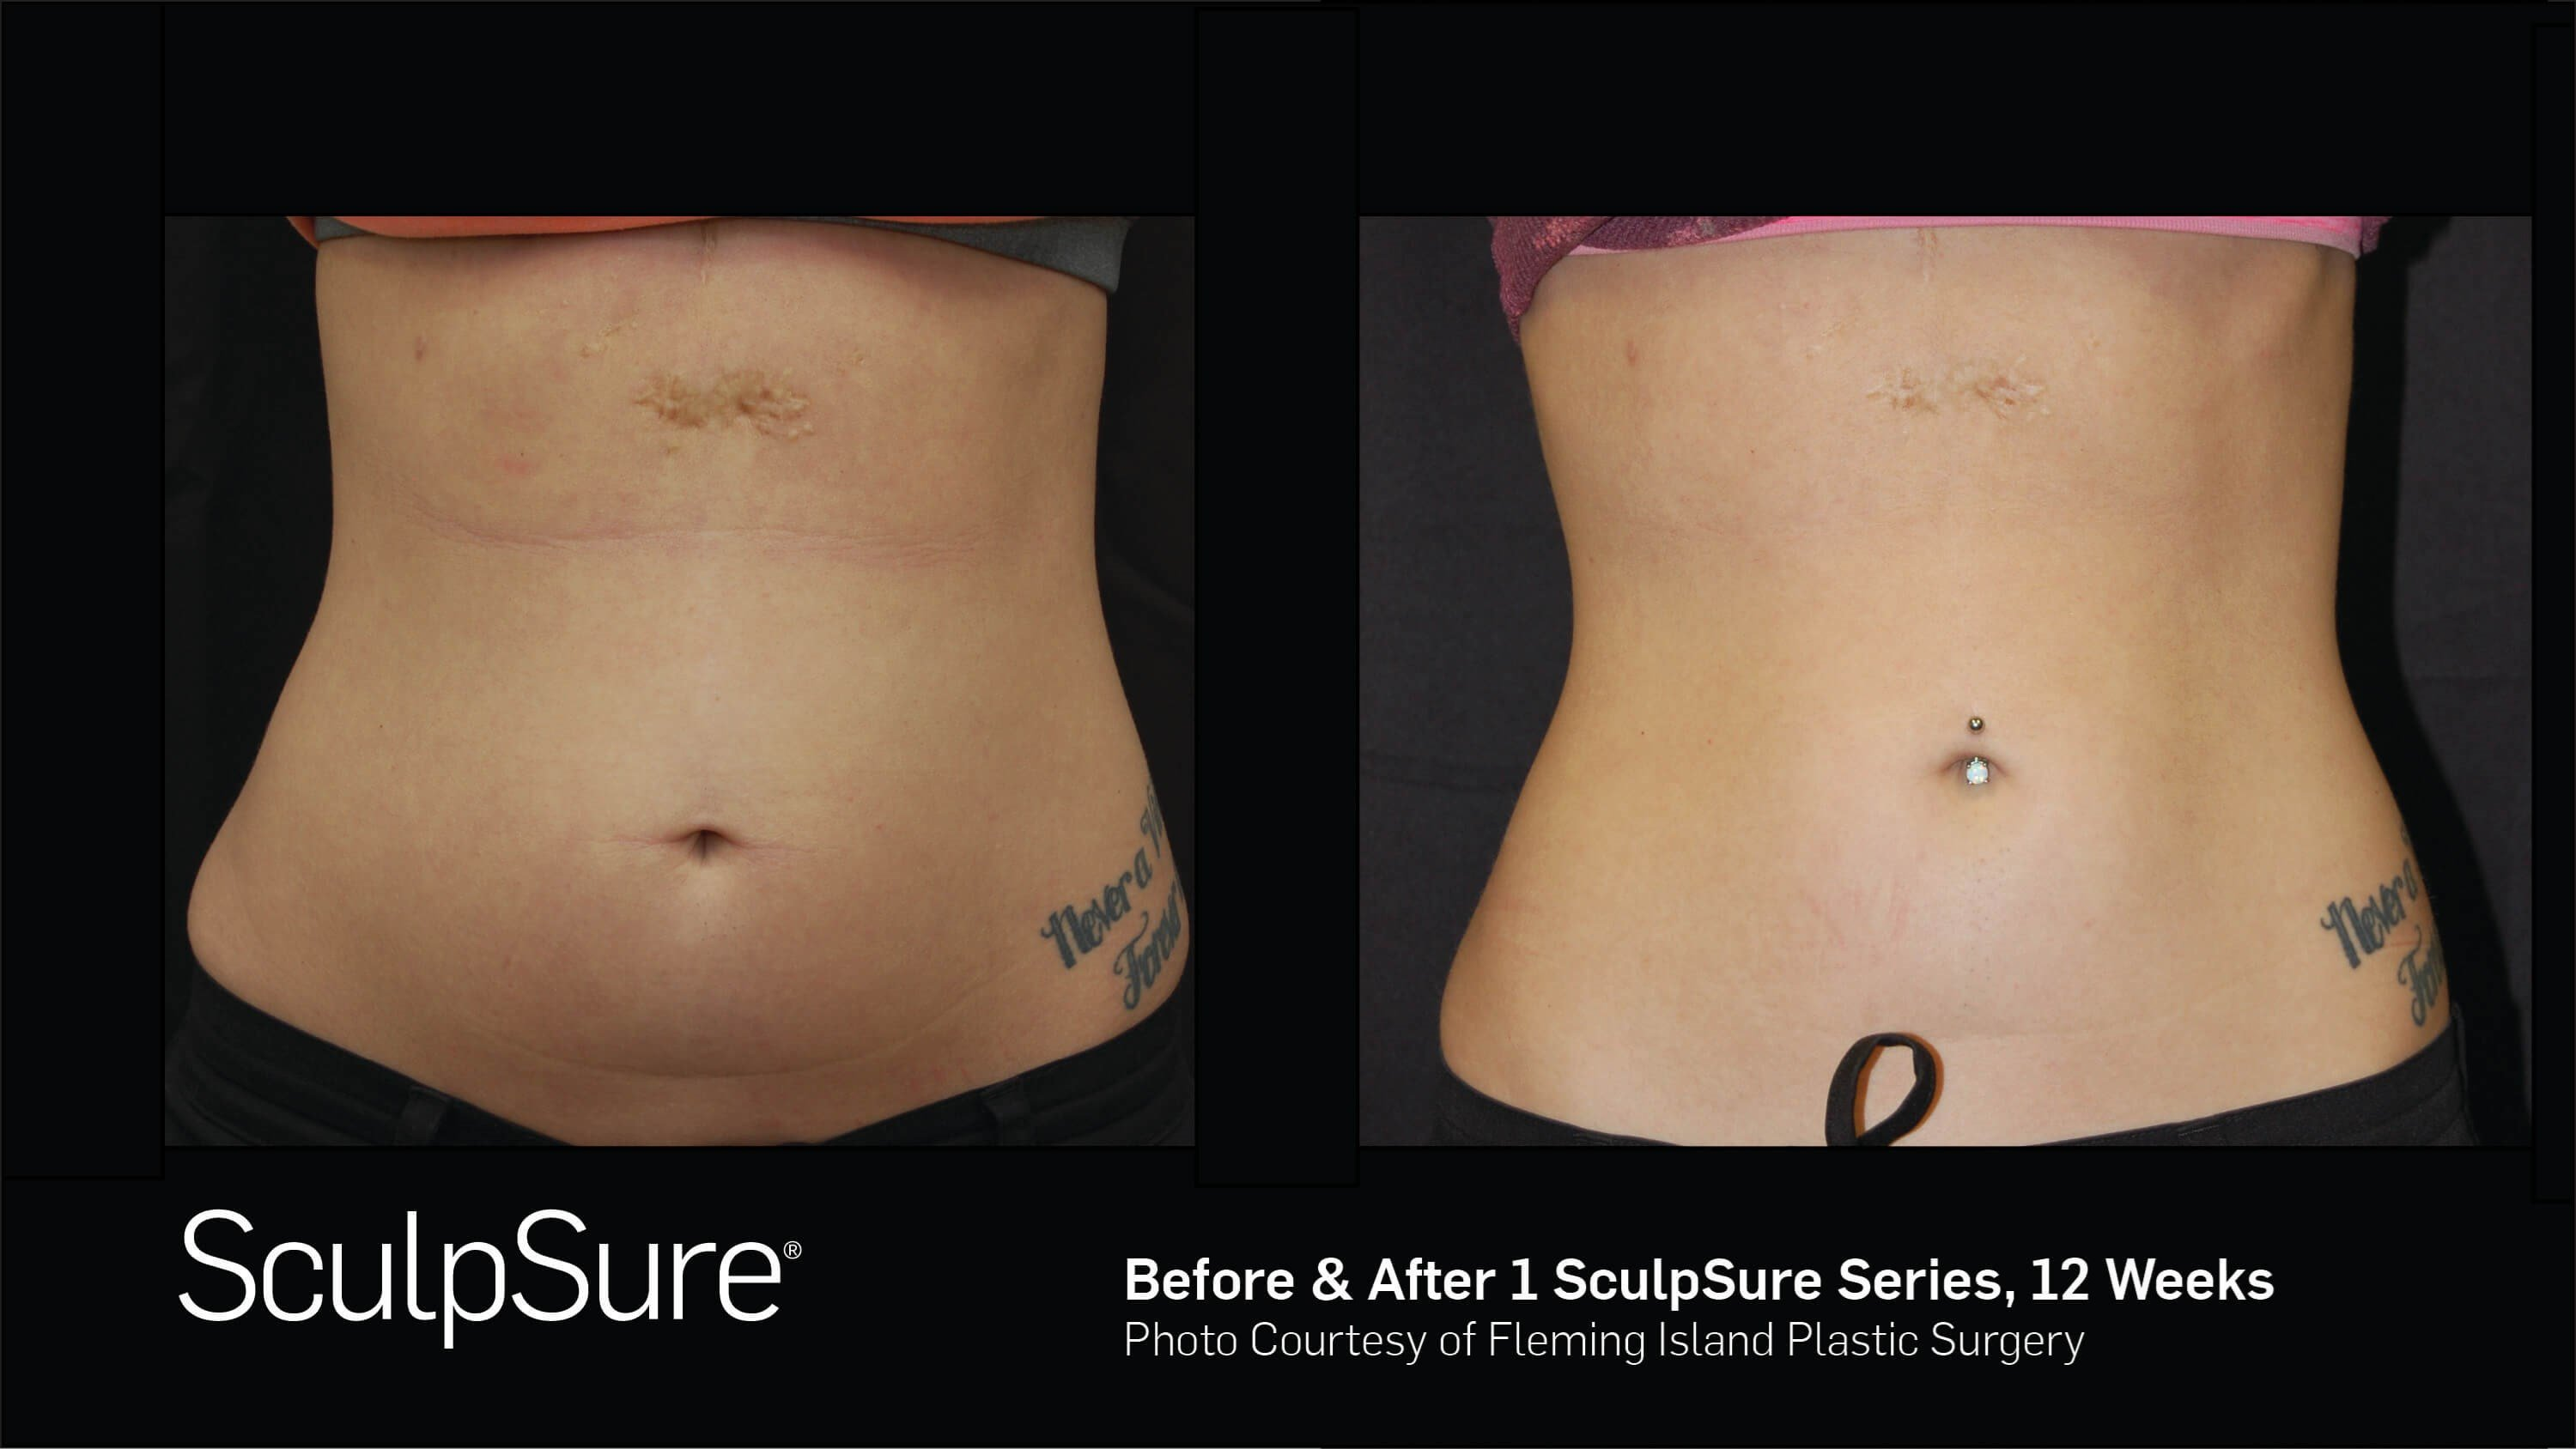 Before & After SculpSure Anterior View SculpSure